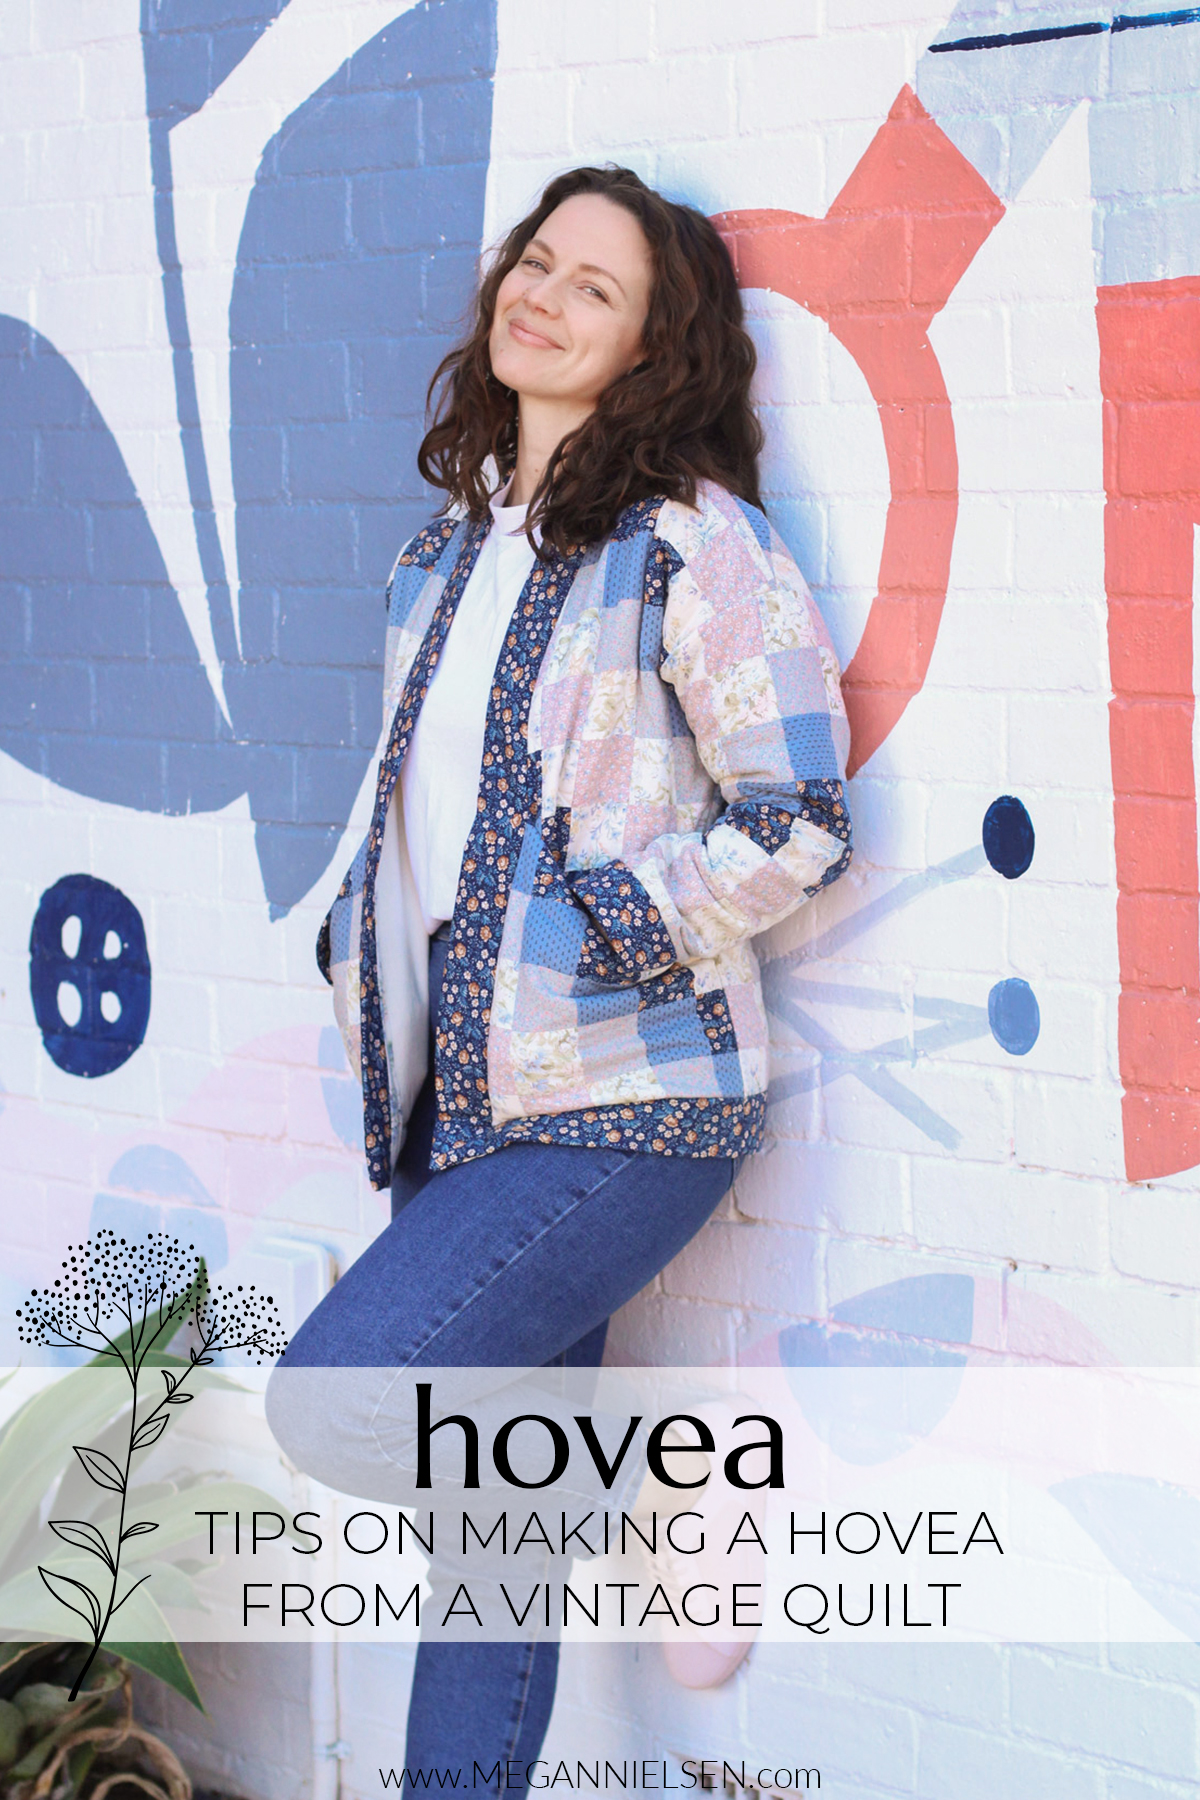 Tips on how to make a Hovea from a vintage quilt